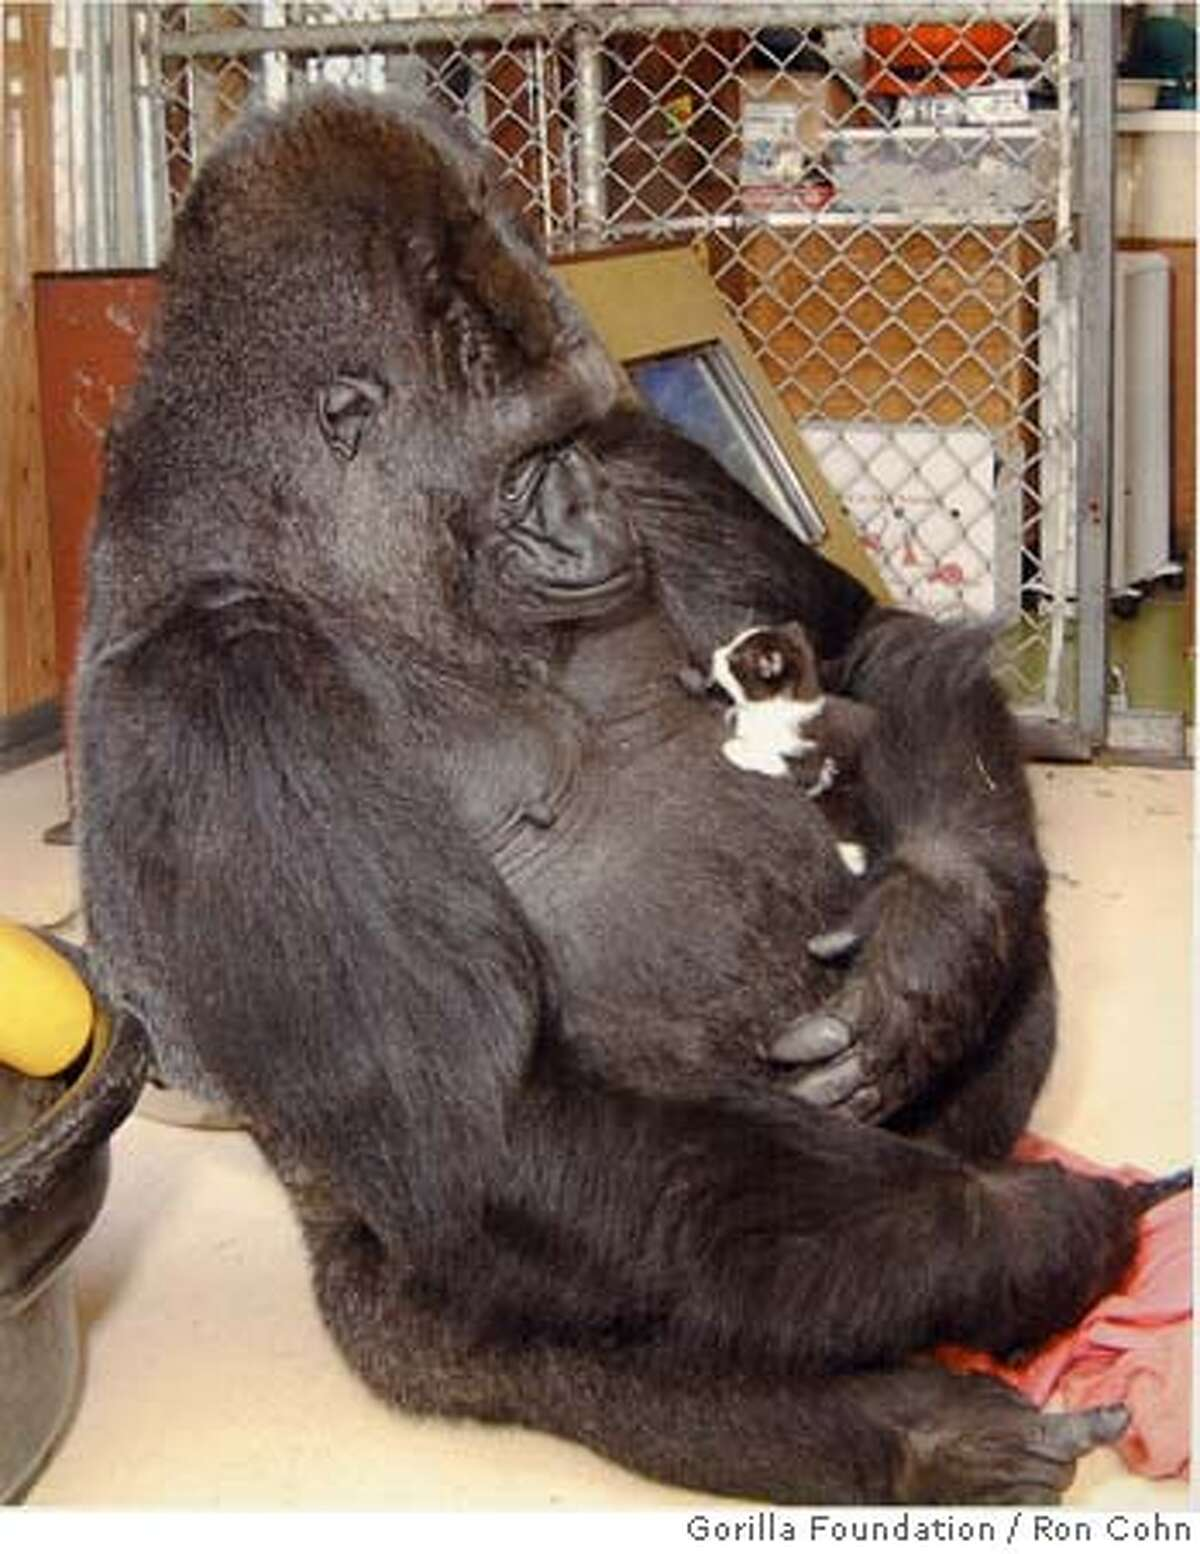 Koko is shown in 2000 holding a kitten, one of many pets the gorilla has had in her years at the Gorilla Foundation.